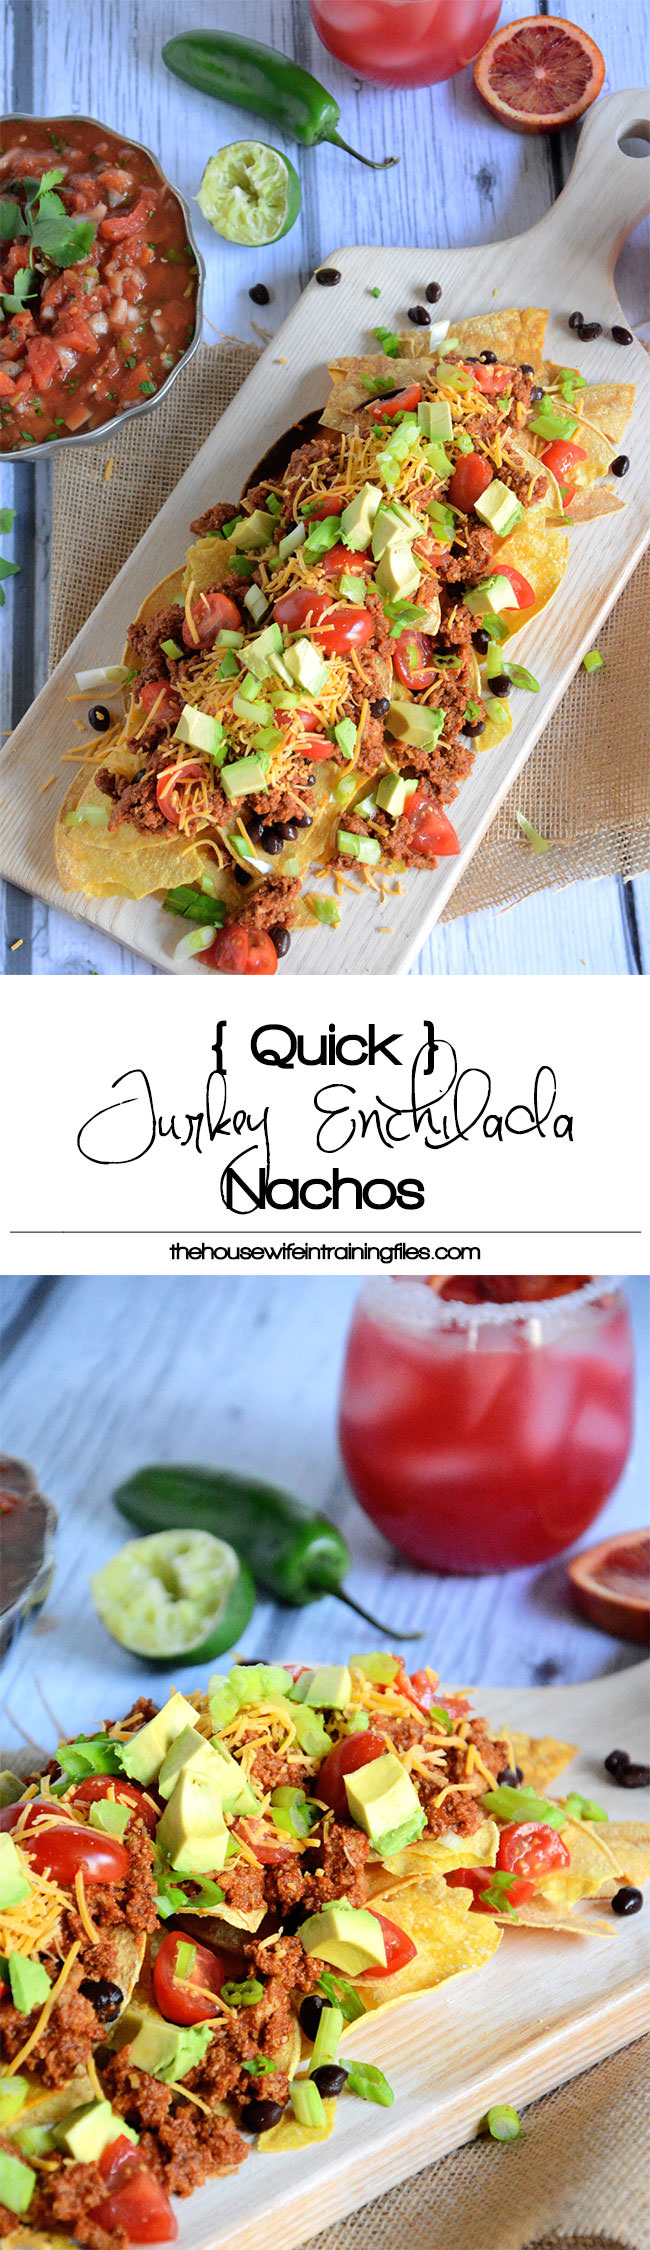 Quick and flavorful Enchilada Nachos with spiced, lean ground turkey makes these loaded nachos a crowd pleaser!